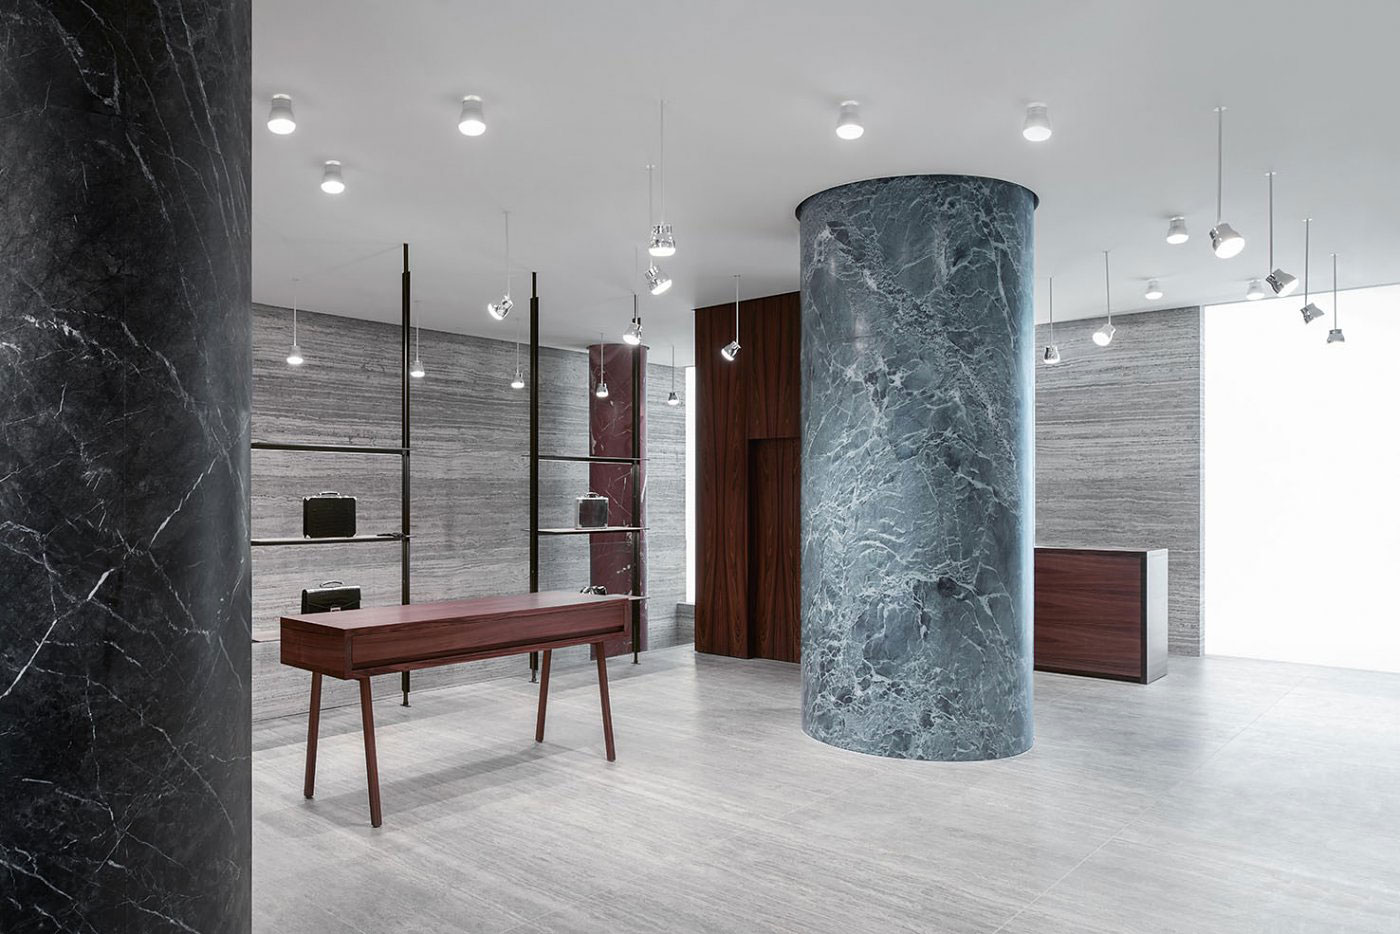 Brioni S Paris Flagship By David Chipperfield Architects